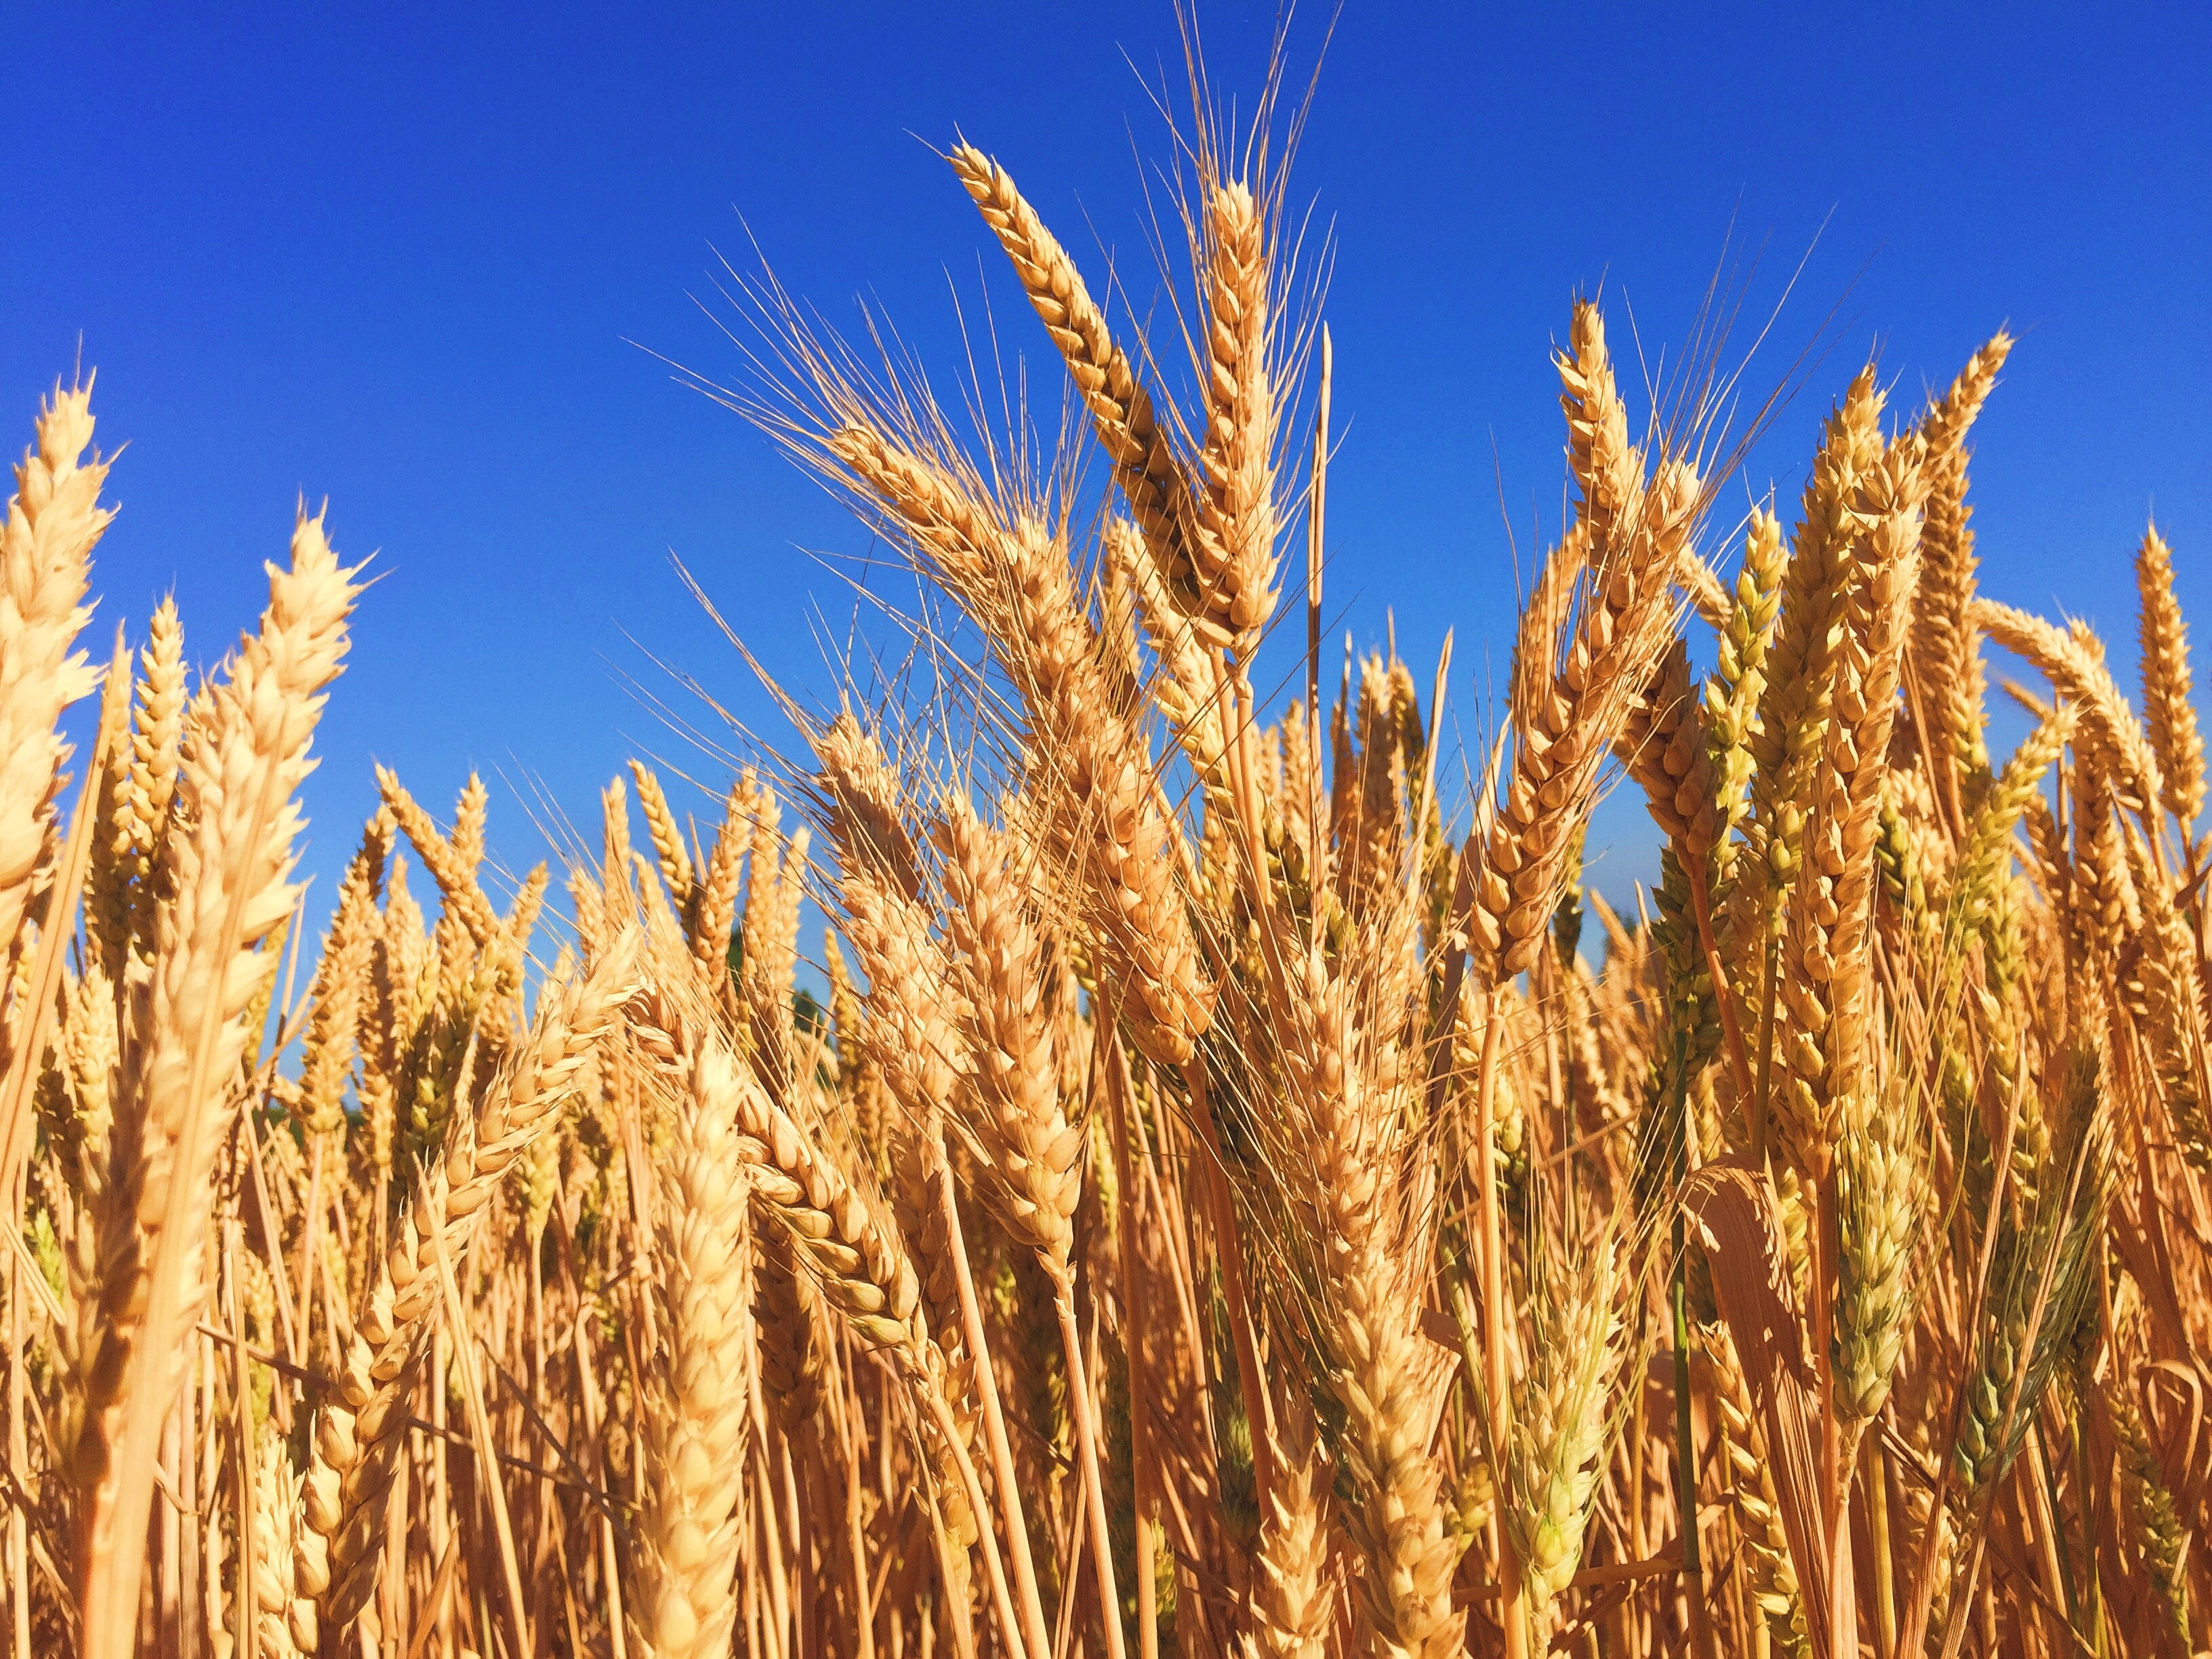 close up of wheat field with blue sky